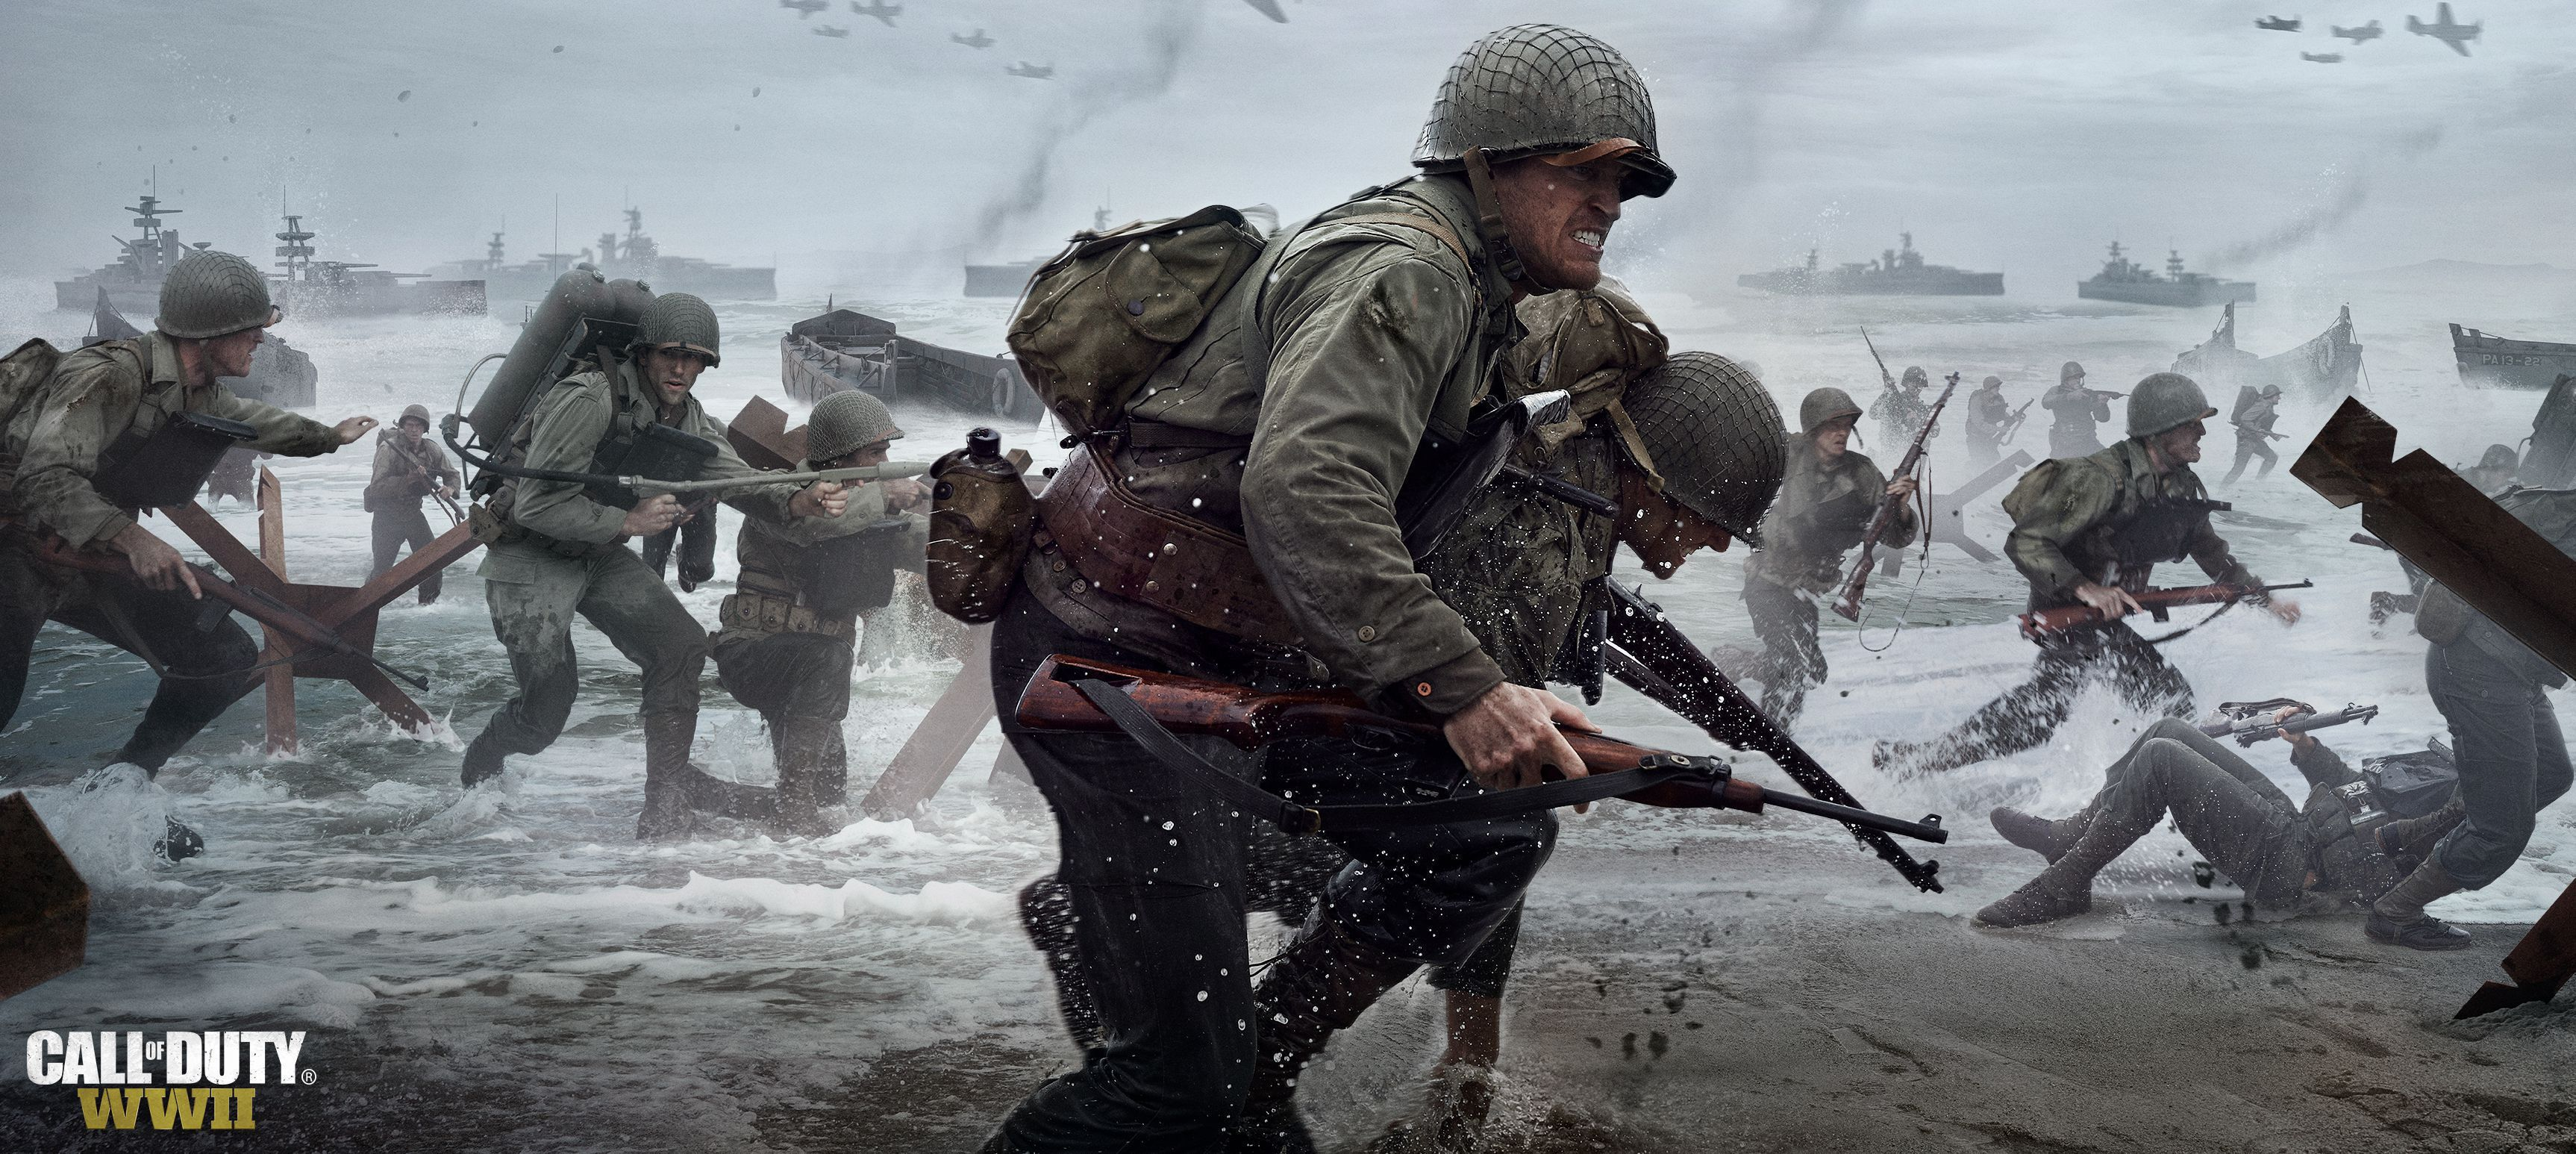 Call Of Duty Ww2 Pictures